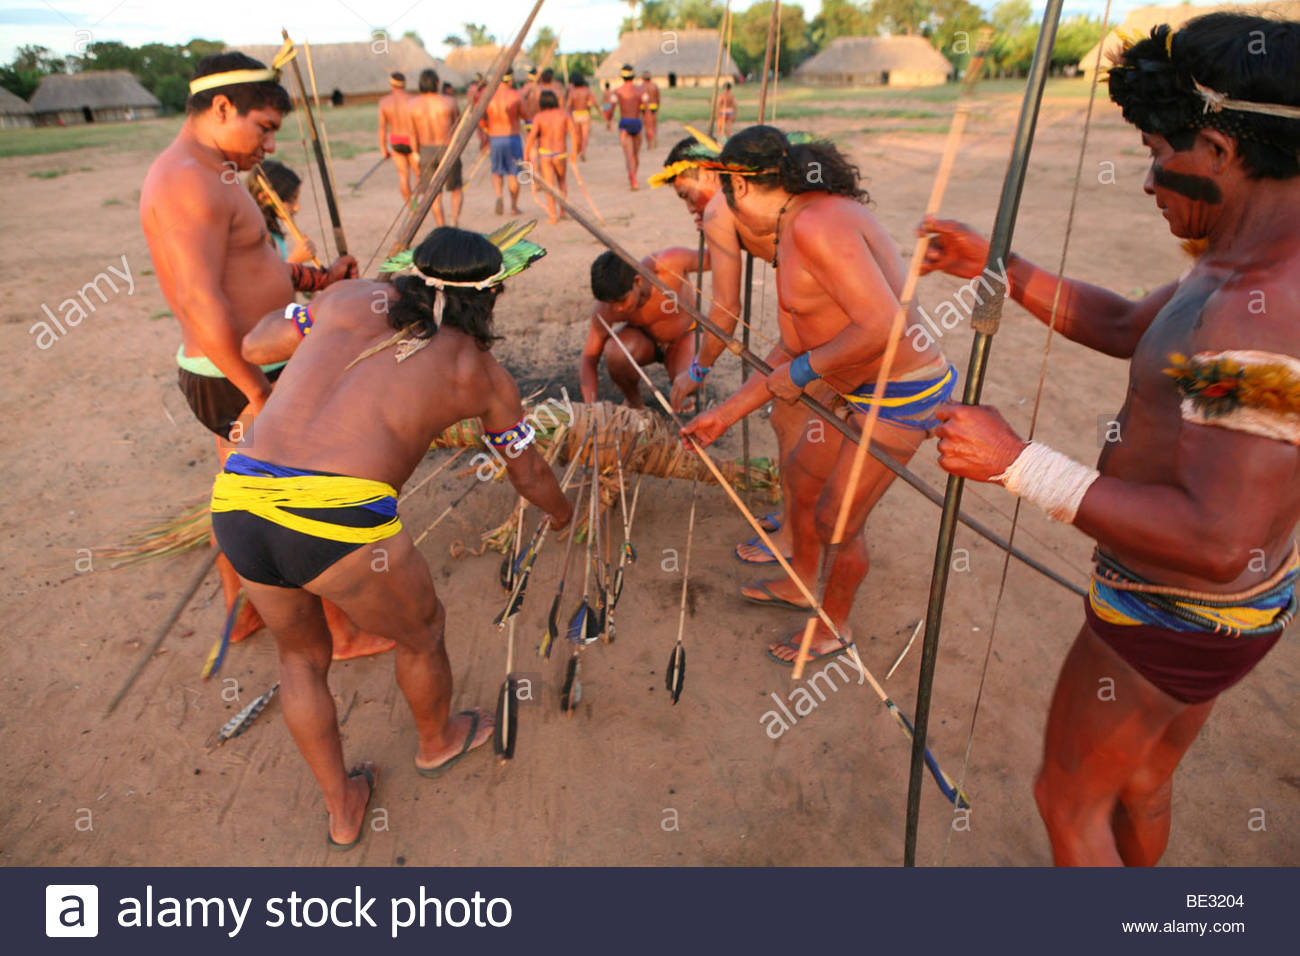 the-xingu-indian-in-the-aamzone-brazil-love-bow-and-arrow-competition-BE3204